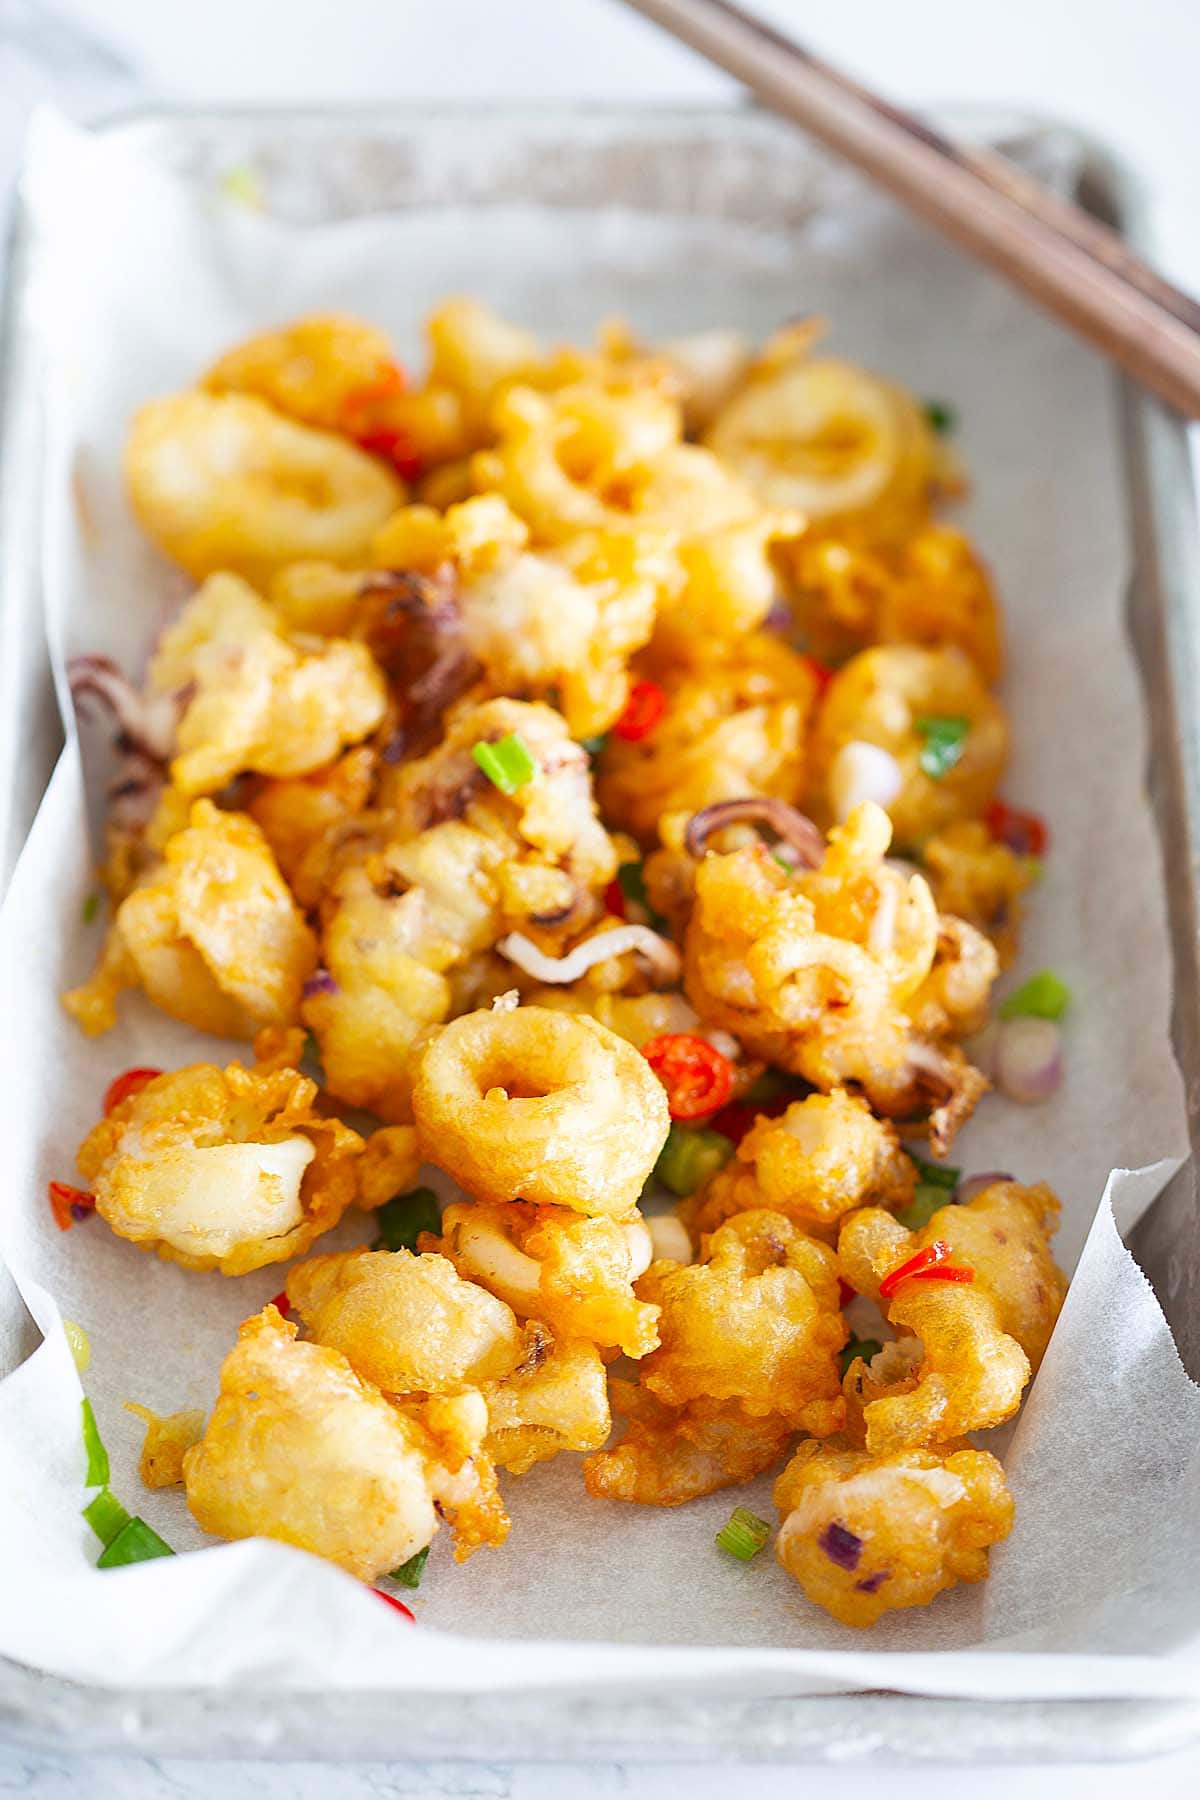 Salt and pepper squid recipe with squid, salt, pepper, scallion and red chilies.